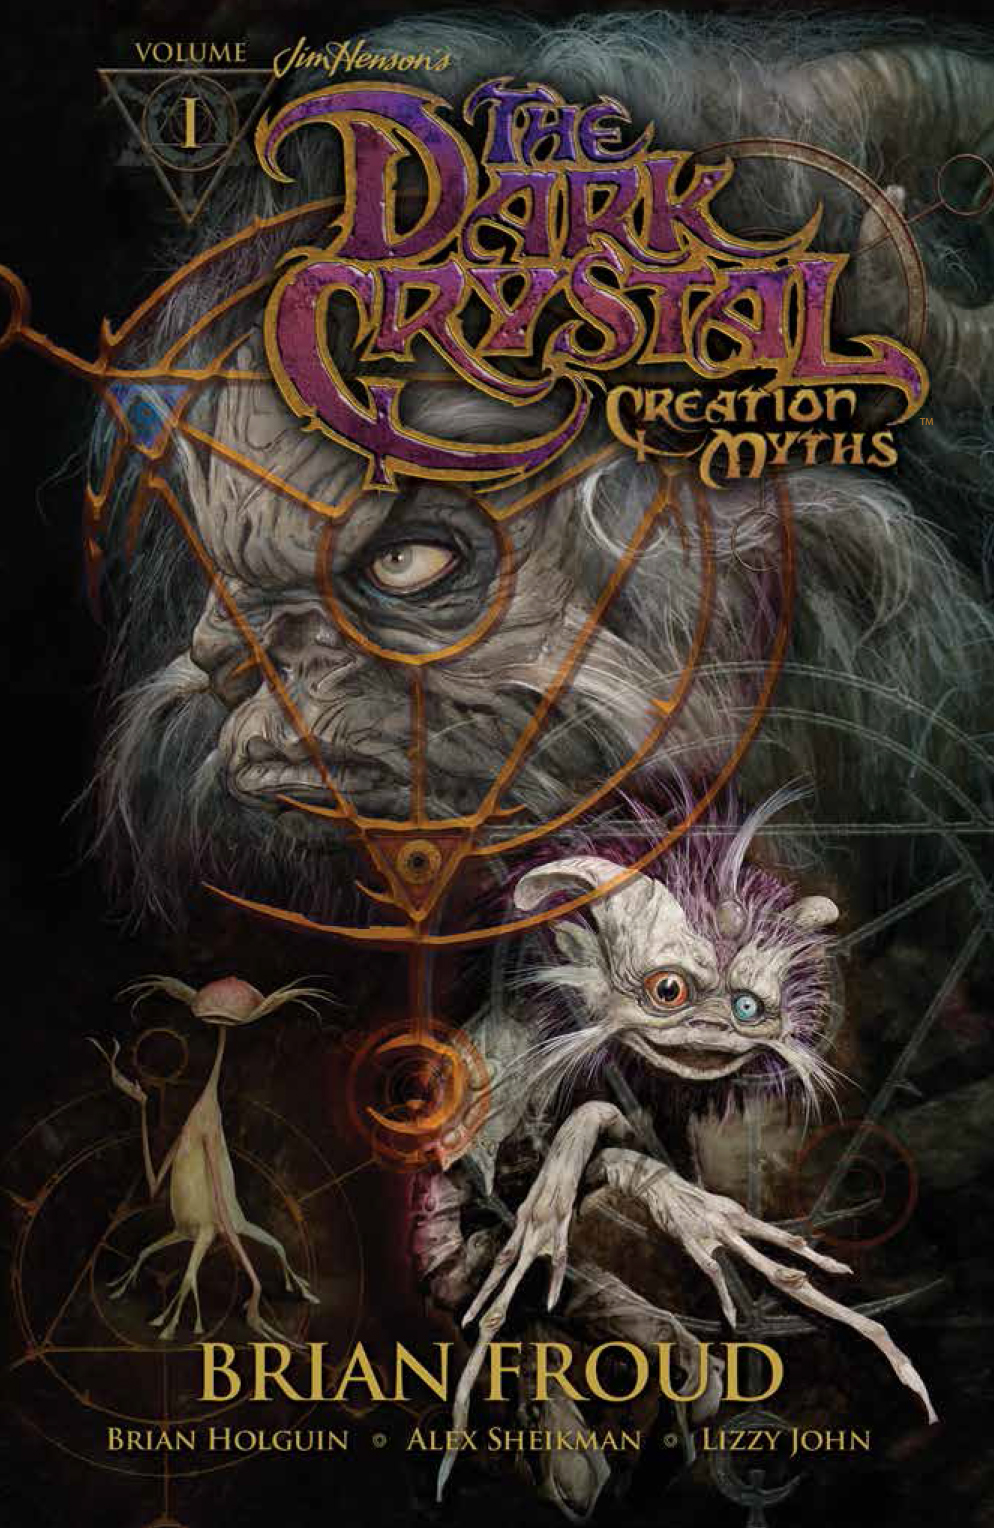 JIM HENSON DARK CRYSTAL TP VOL 01 CREATION MYTHS